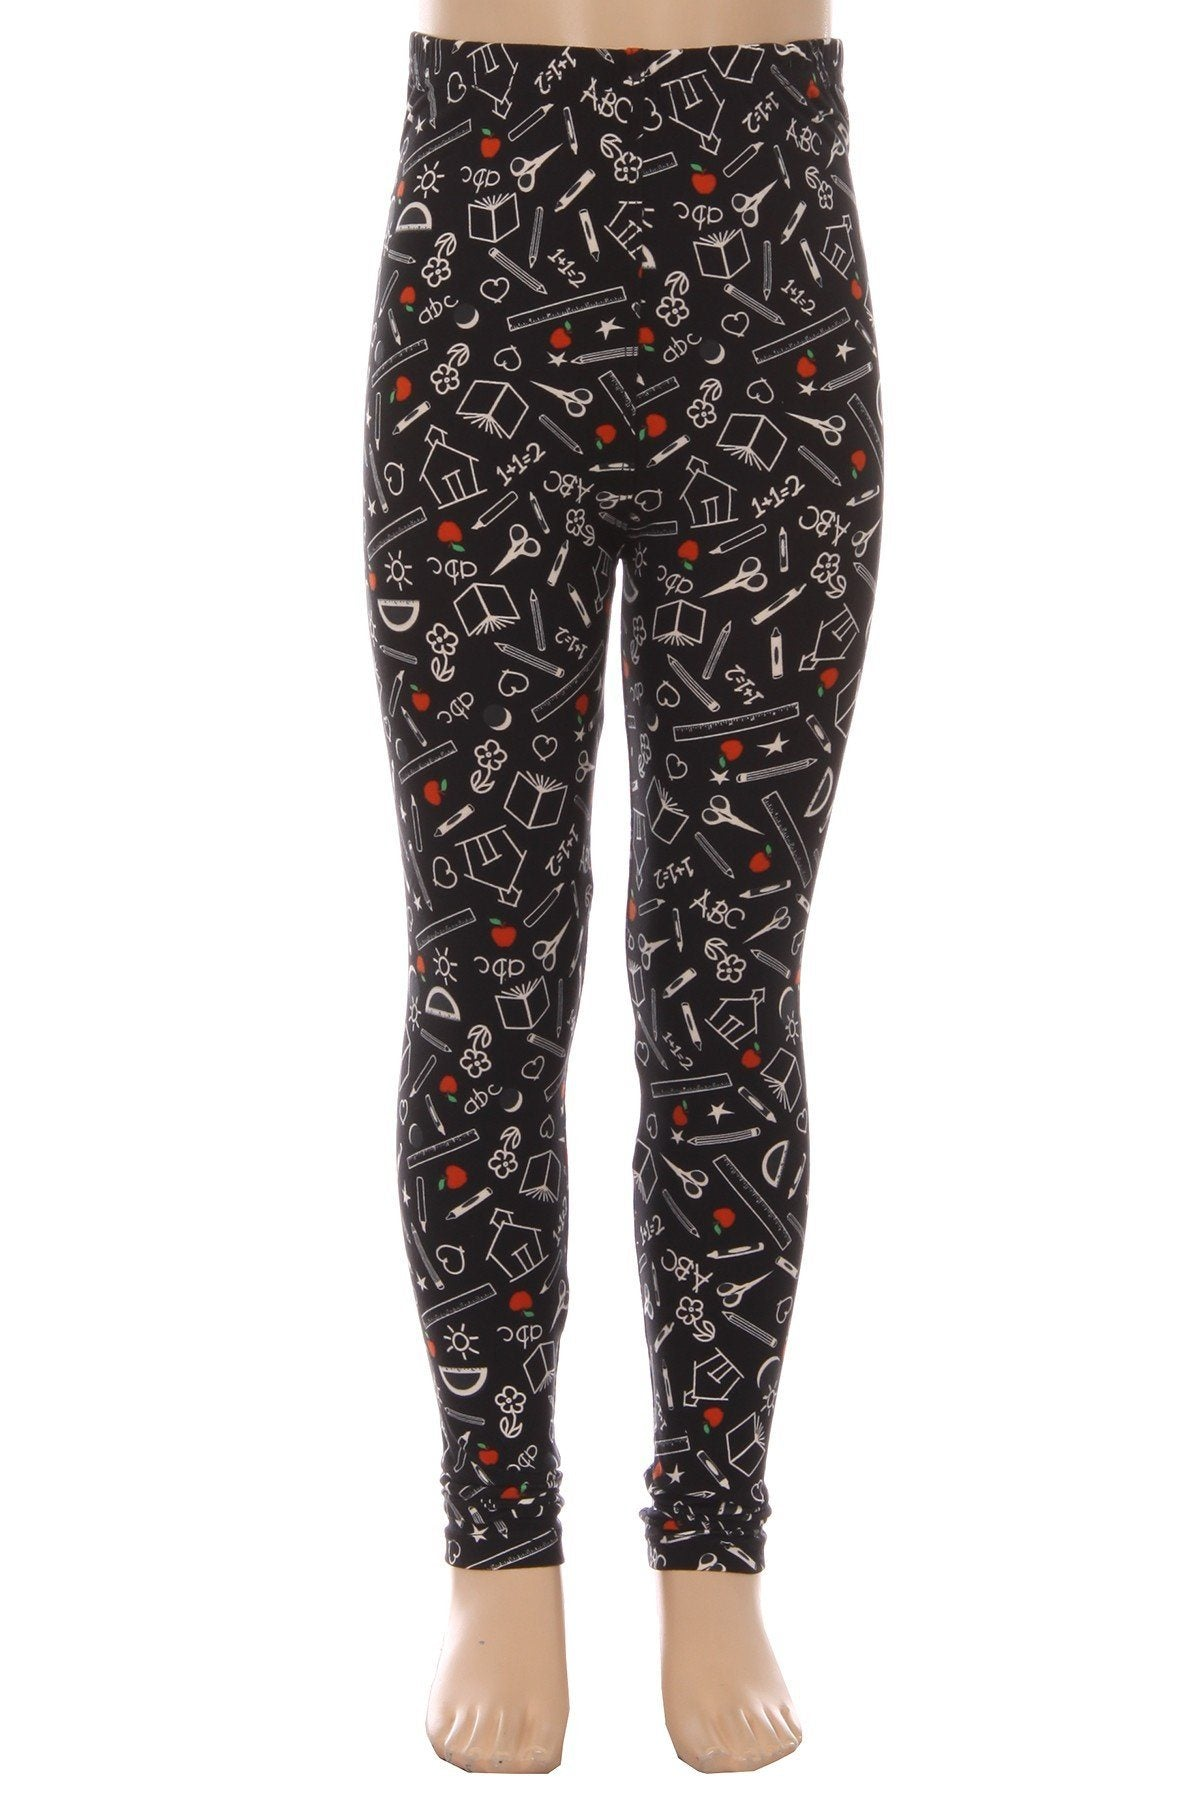 Girl's School House ABC Printed Leggings Black: S and L Leggings MomMe and More